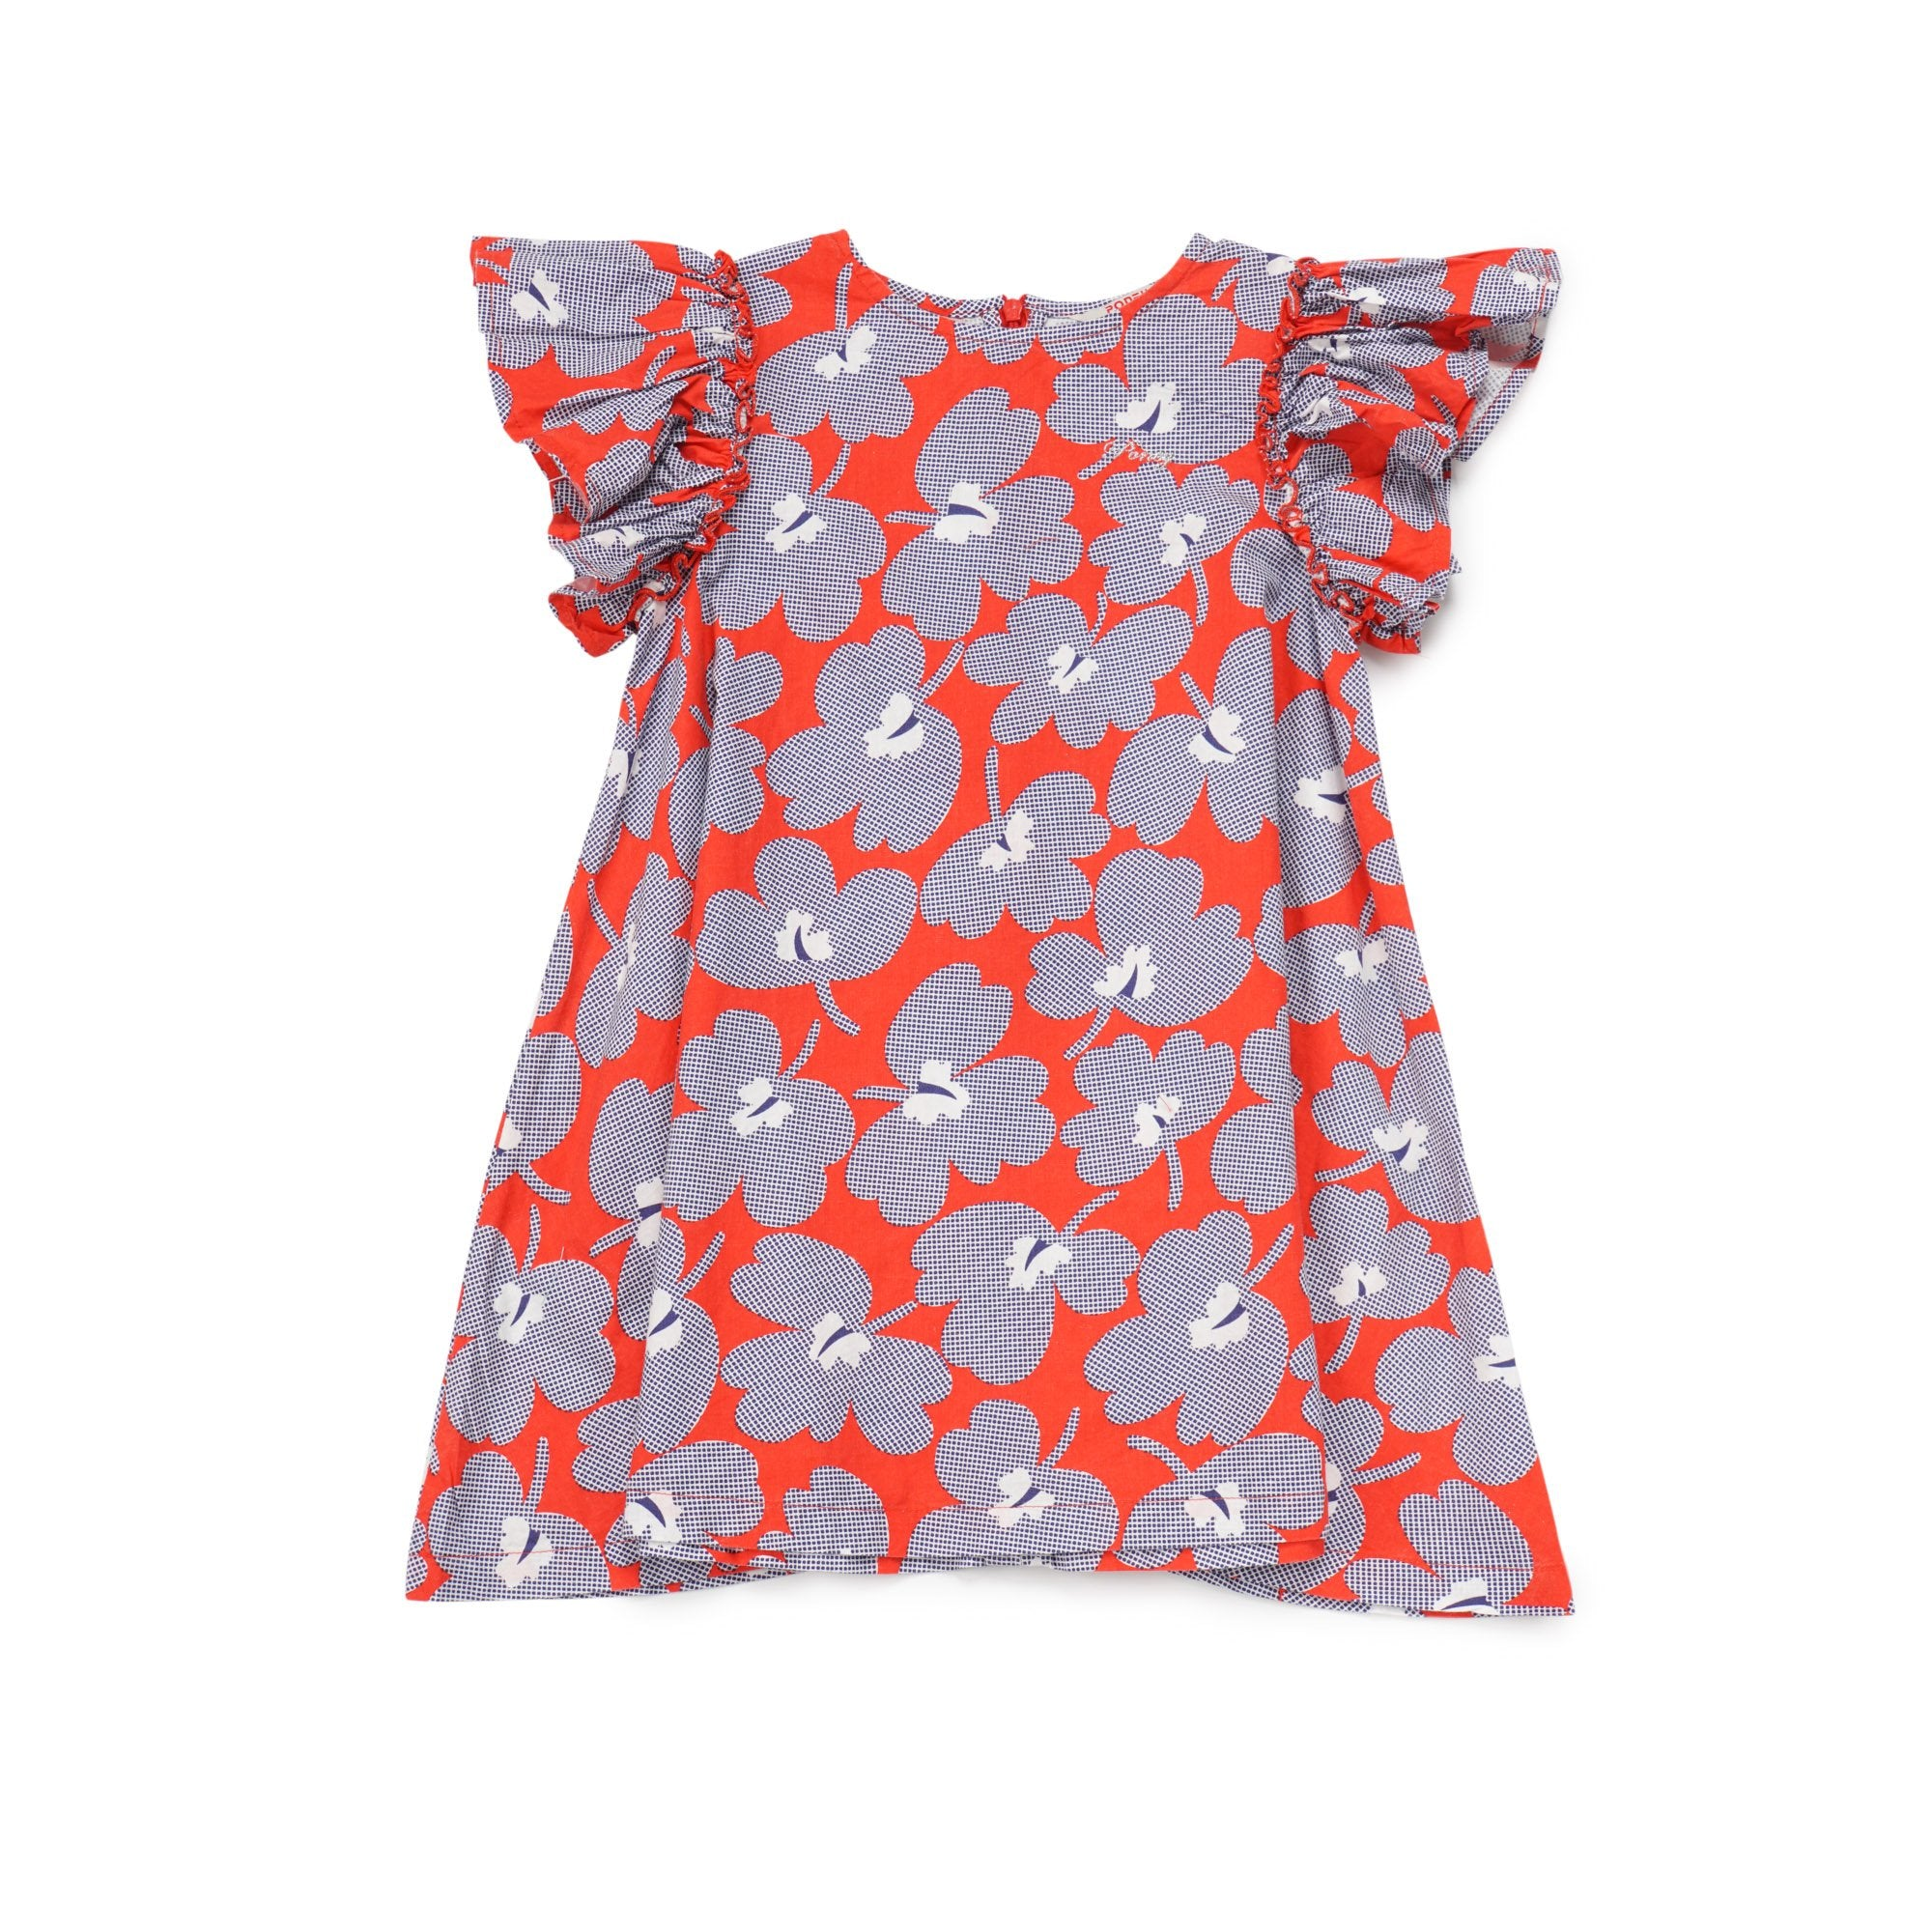 Poney Girls ShortSleeve Dress 8319 (6mths-12yrs)